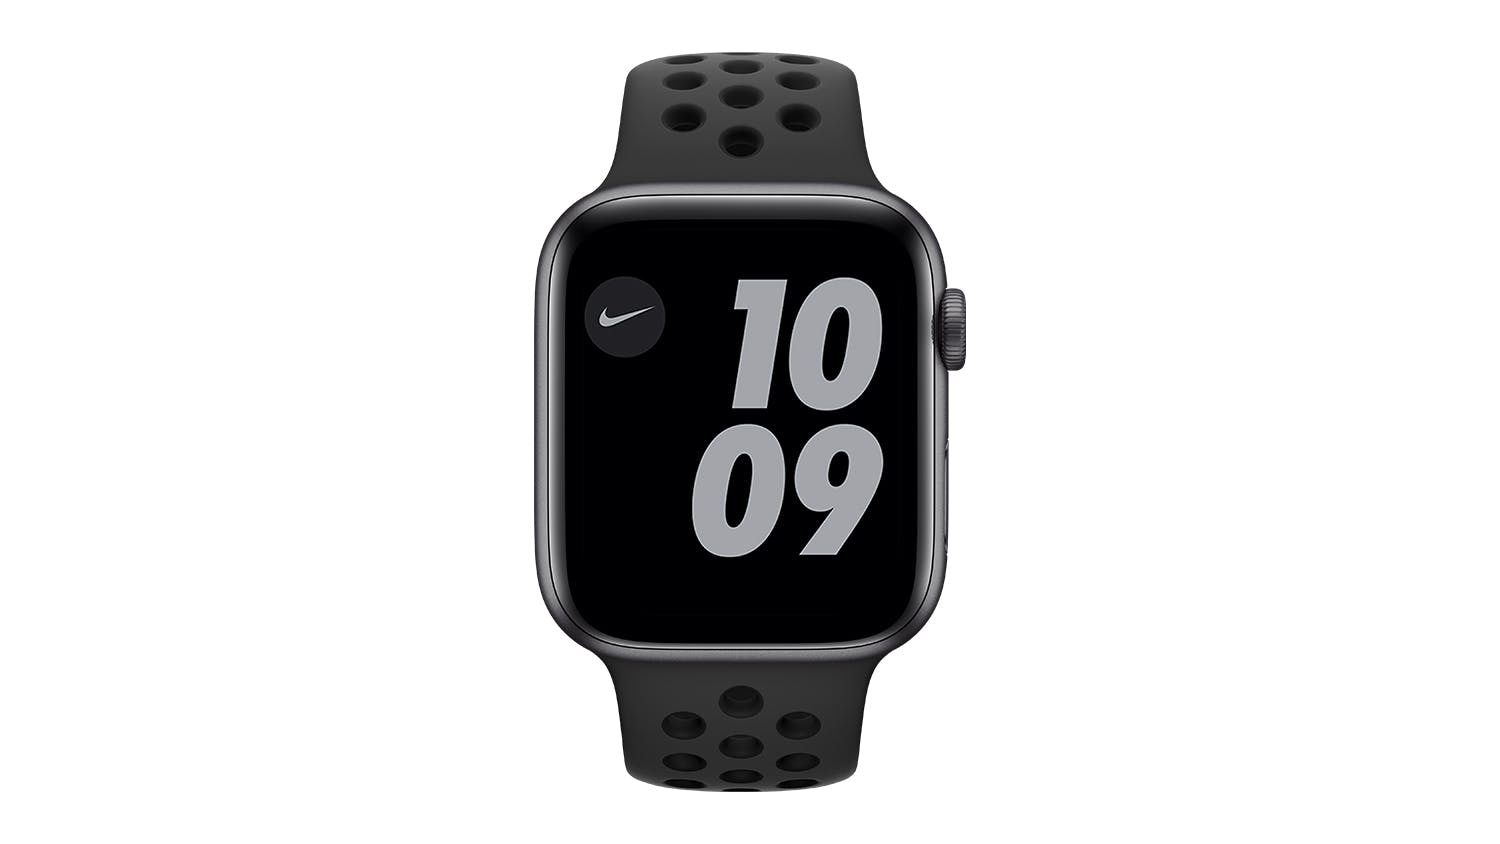 Apple Watch Nike Series 6 (GPS+Cellular) 44mm Space Grey Aluminium Case with Anthracite/Black Nike Sport Band